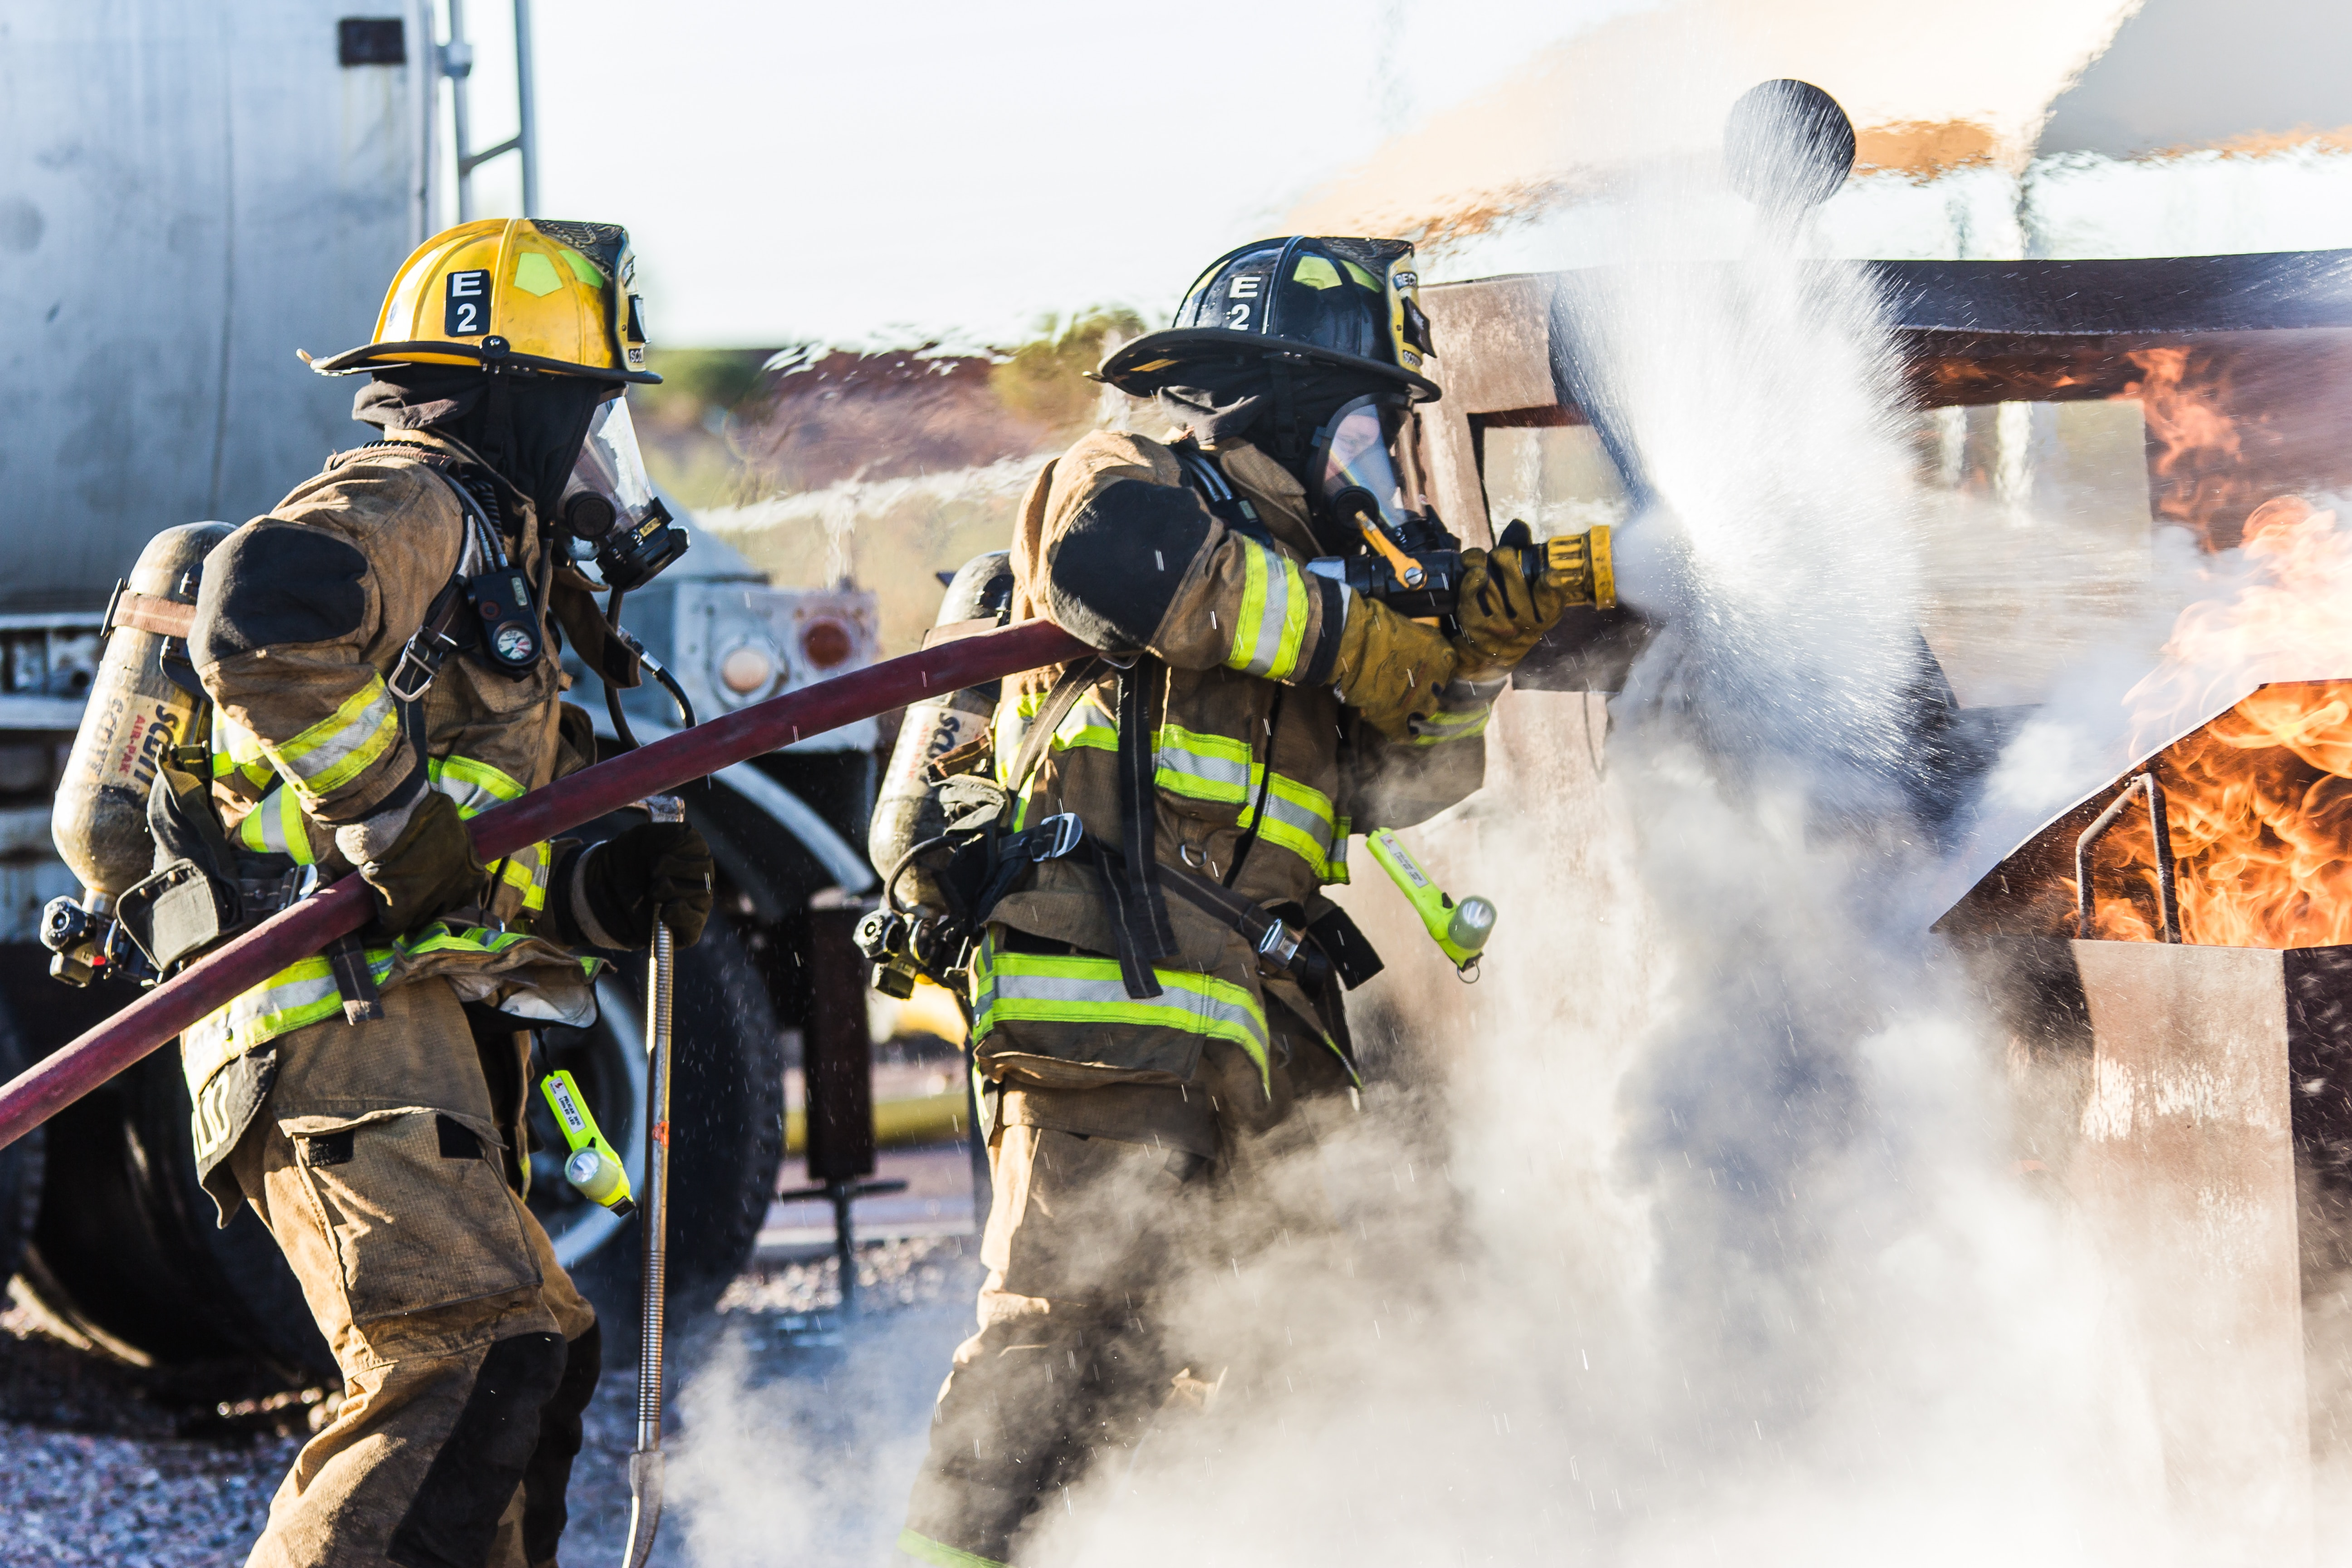 Firefighters can ease one another's job stress, but loving spouses may increase it